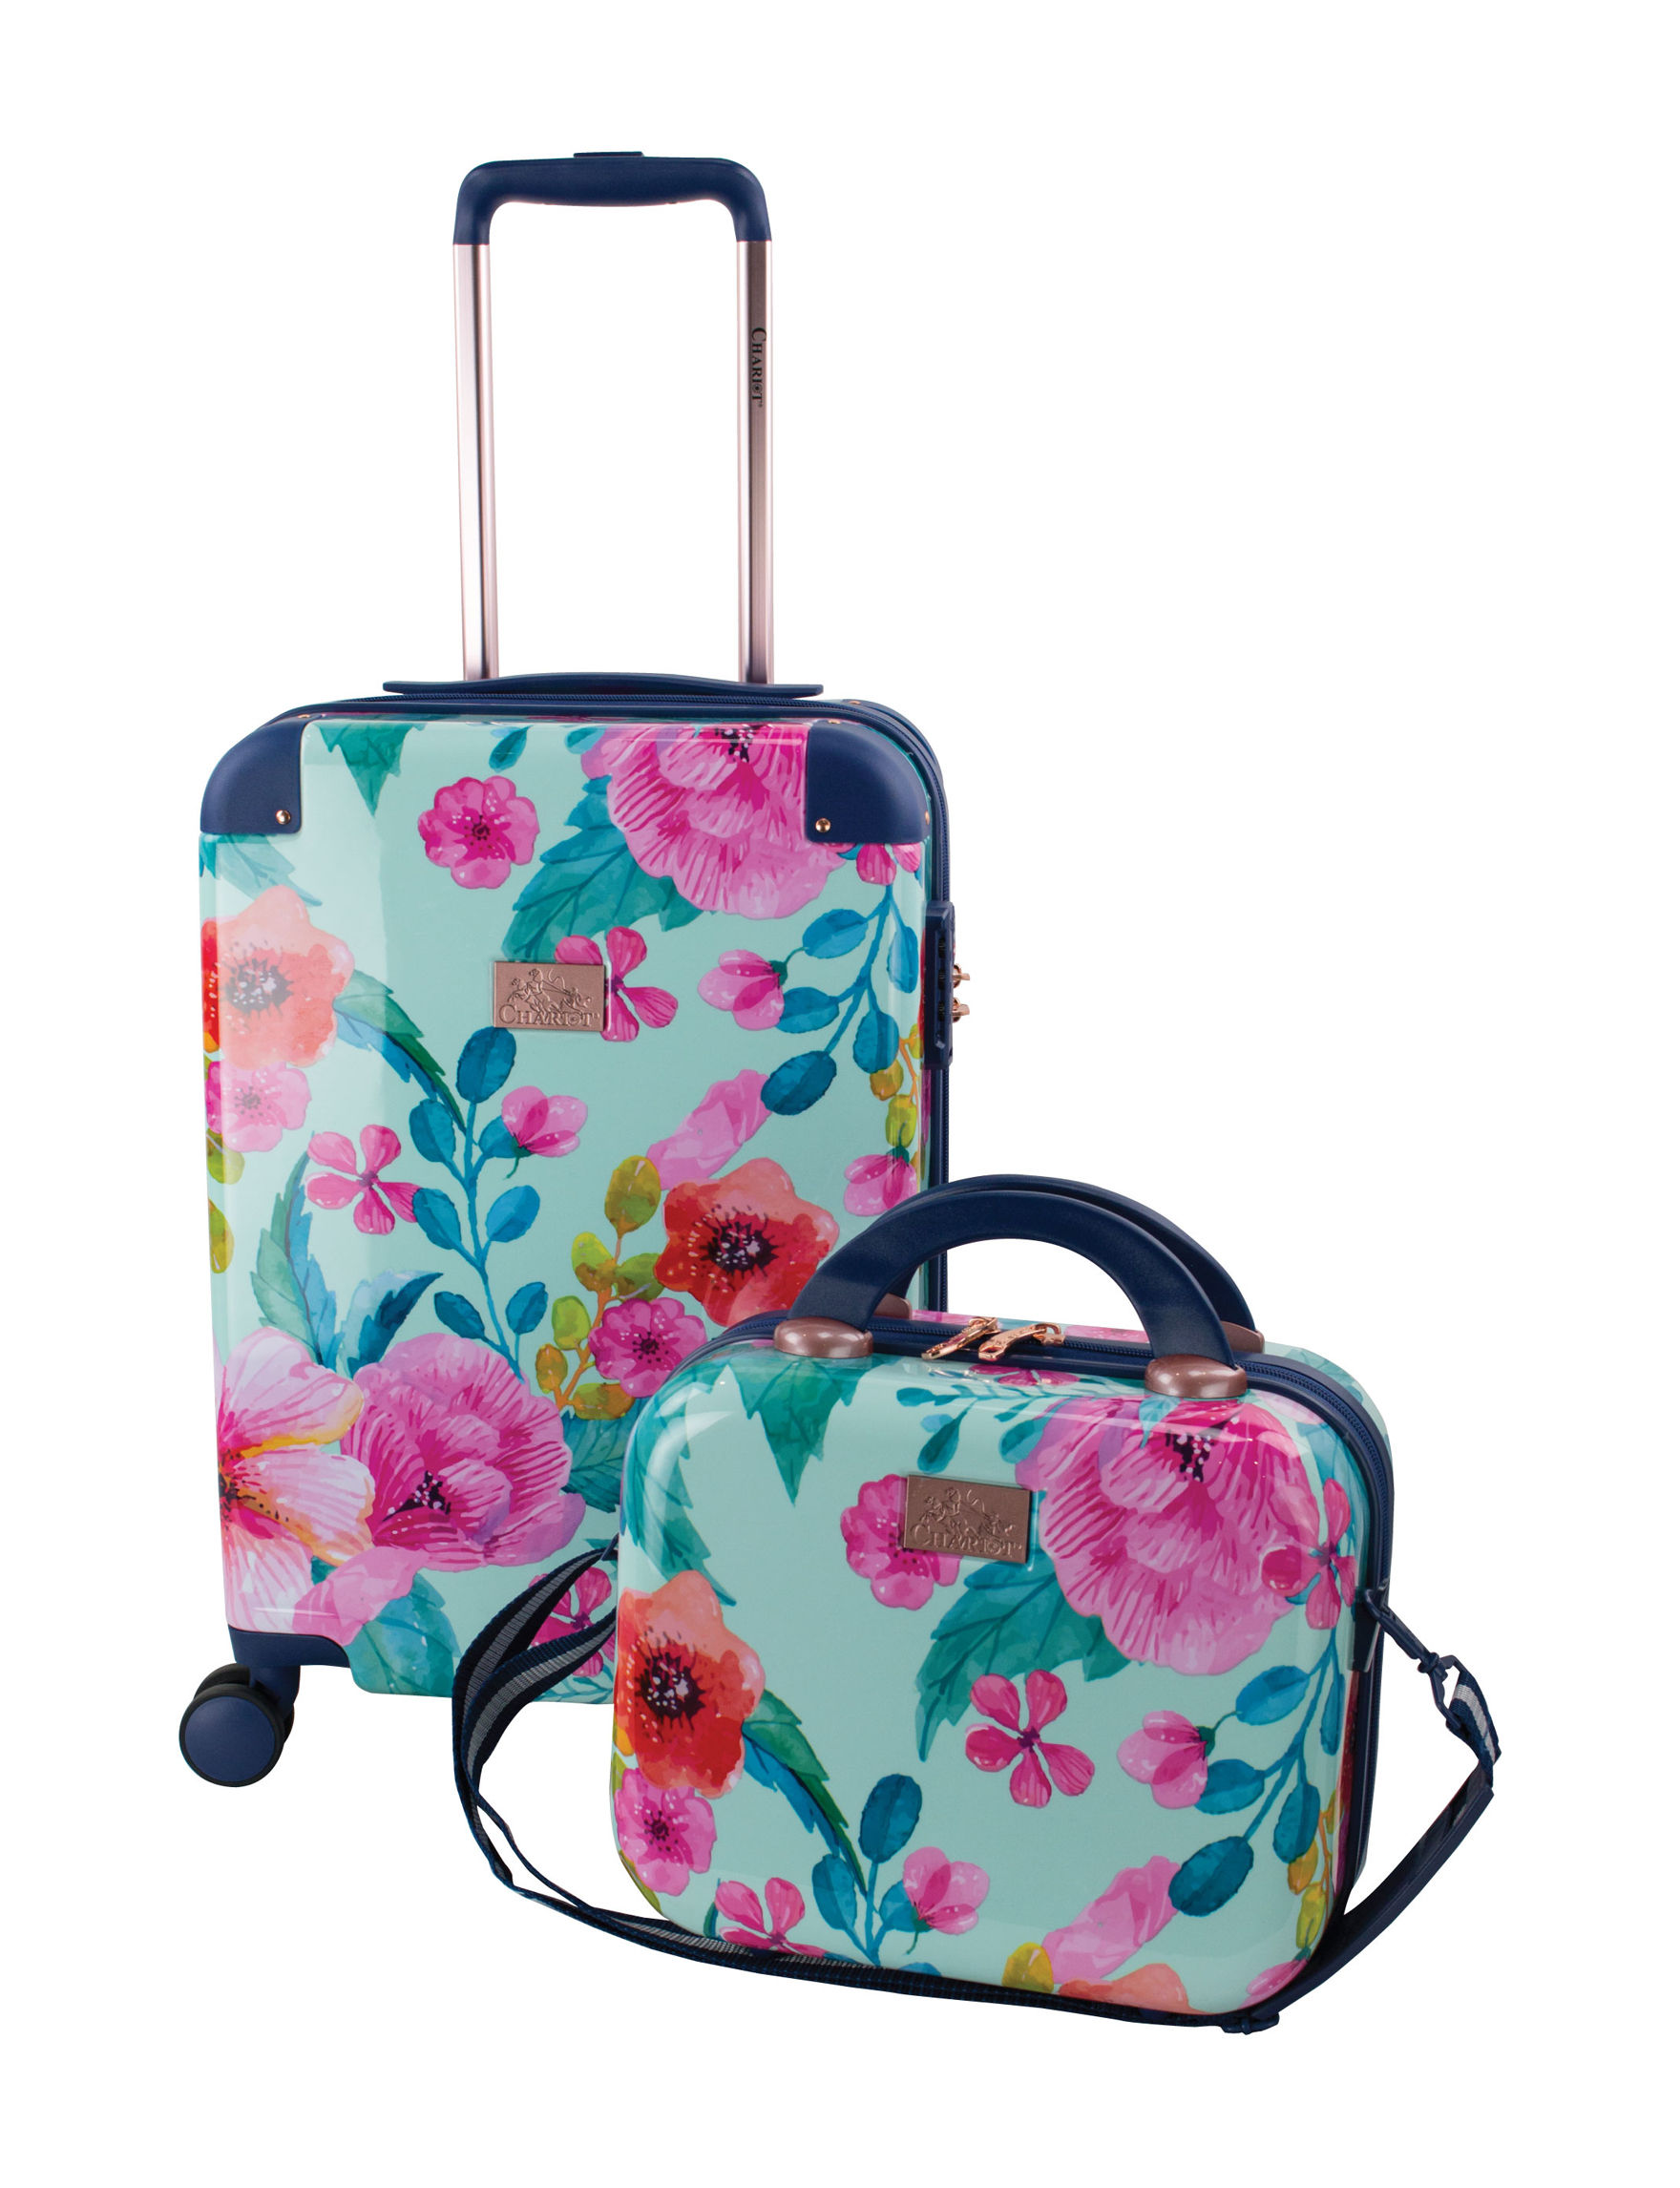 Chariot Travelware Blue Floral Hardside Carry On Luggage